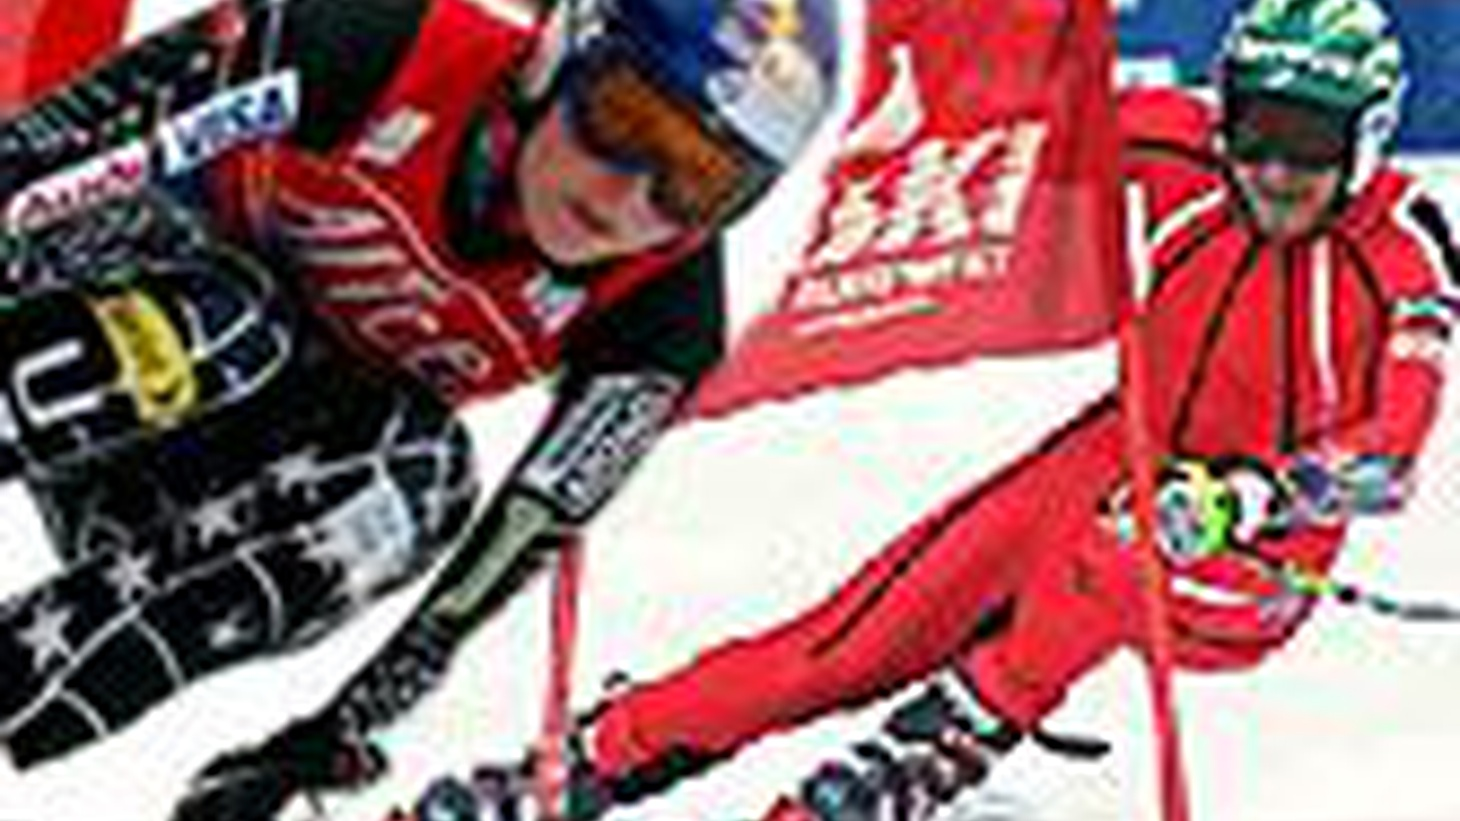 The world's best alpine skiers started careening down the slopes of the world's winter wonderlands late October. This week they're culminating their season in Bormio, Italy, and the top man and woman are on the verge of entering American record books. It's been 25 years since Tamara McKinney and Phil Mahre were the last Americans to win the World Cup overall titles the same year...